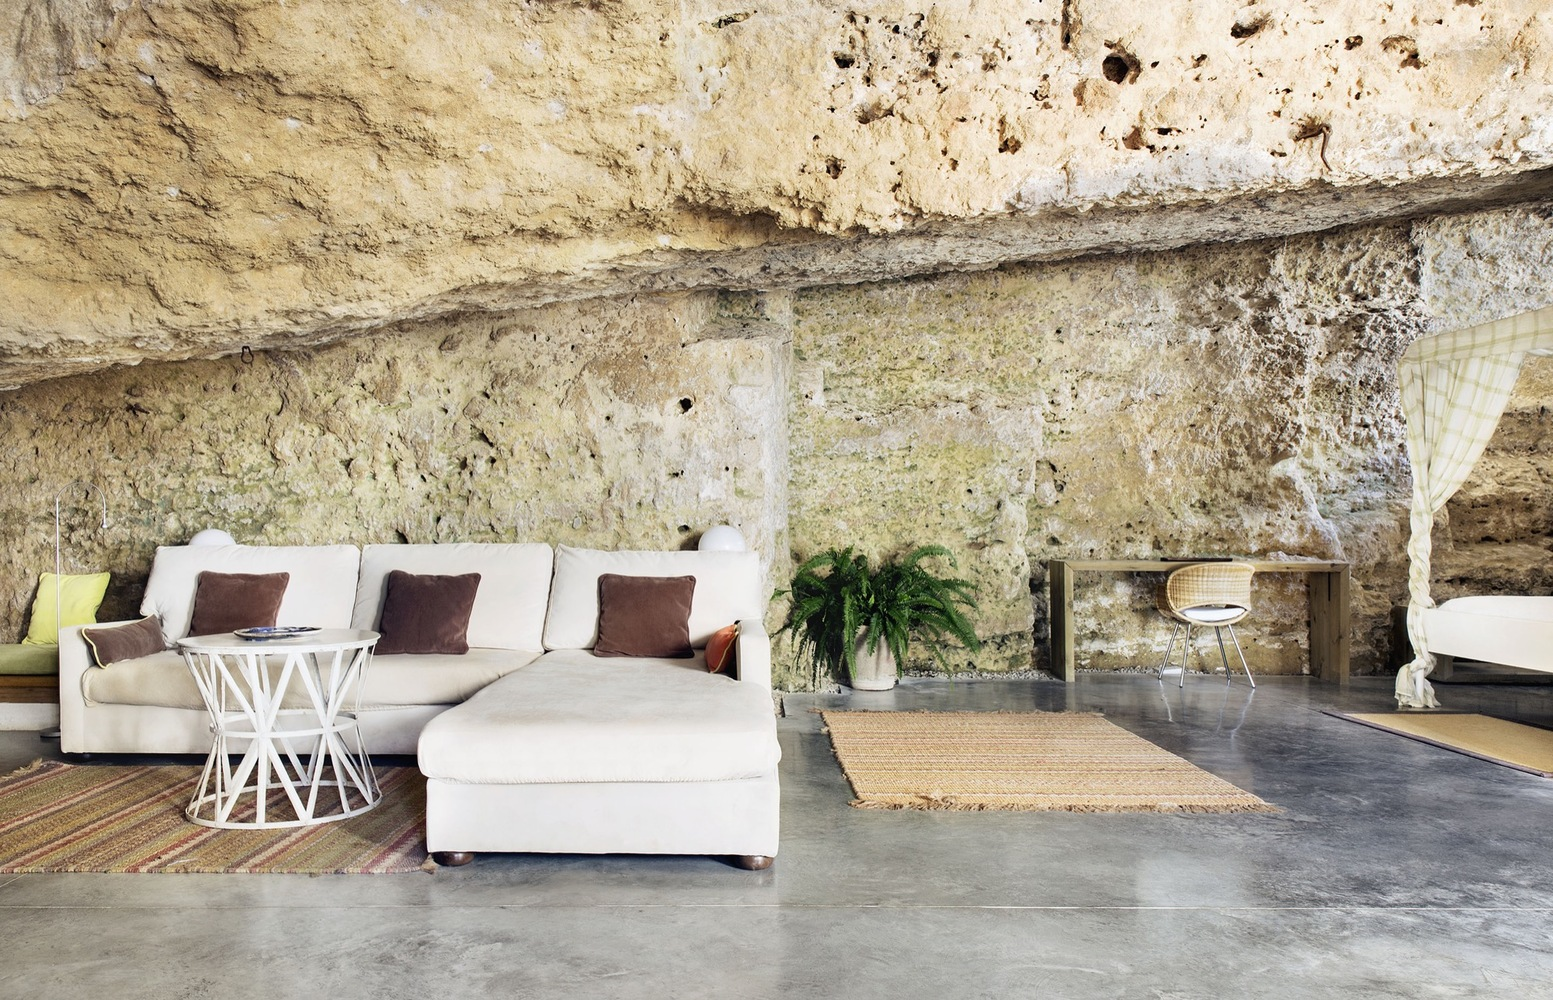 2_House Cave_UMMO Estudio_Inspirationist